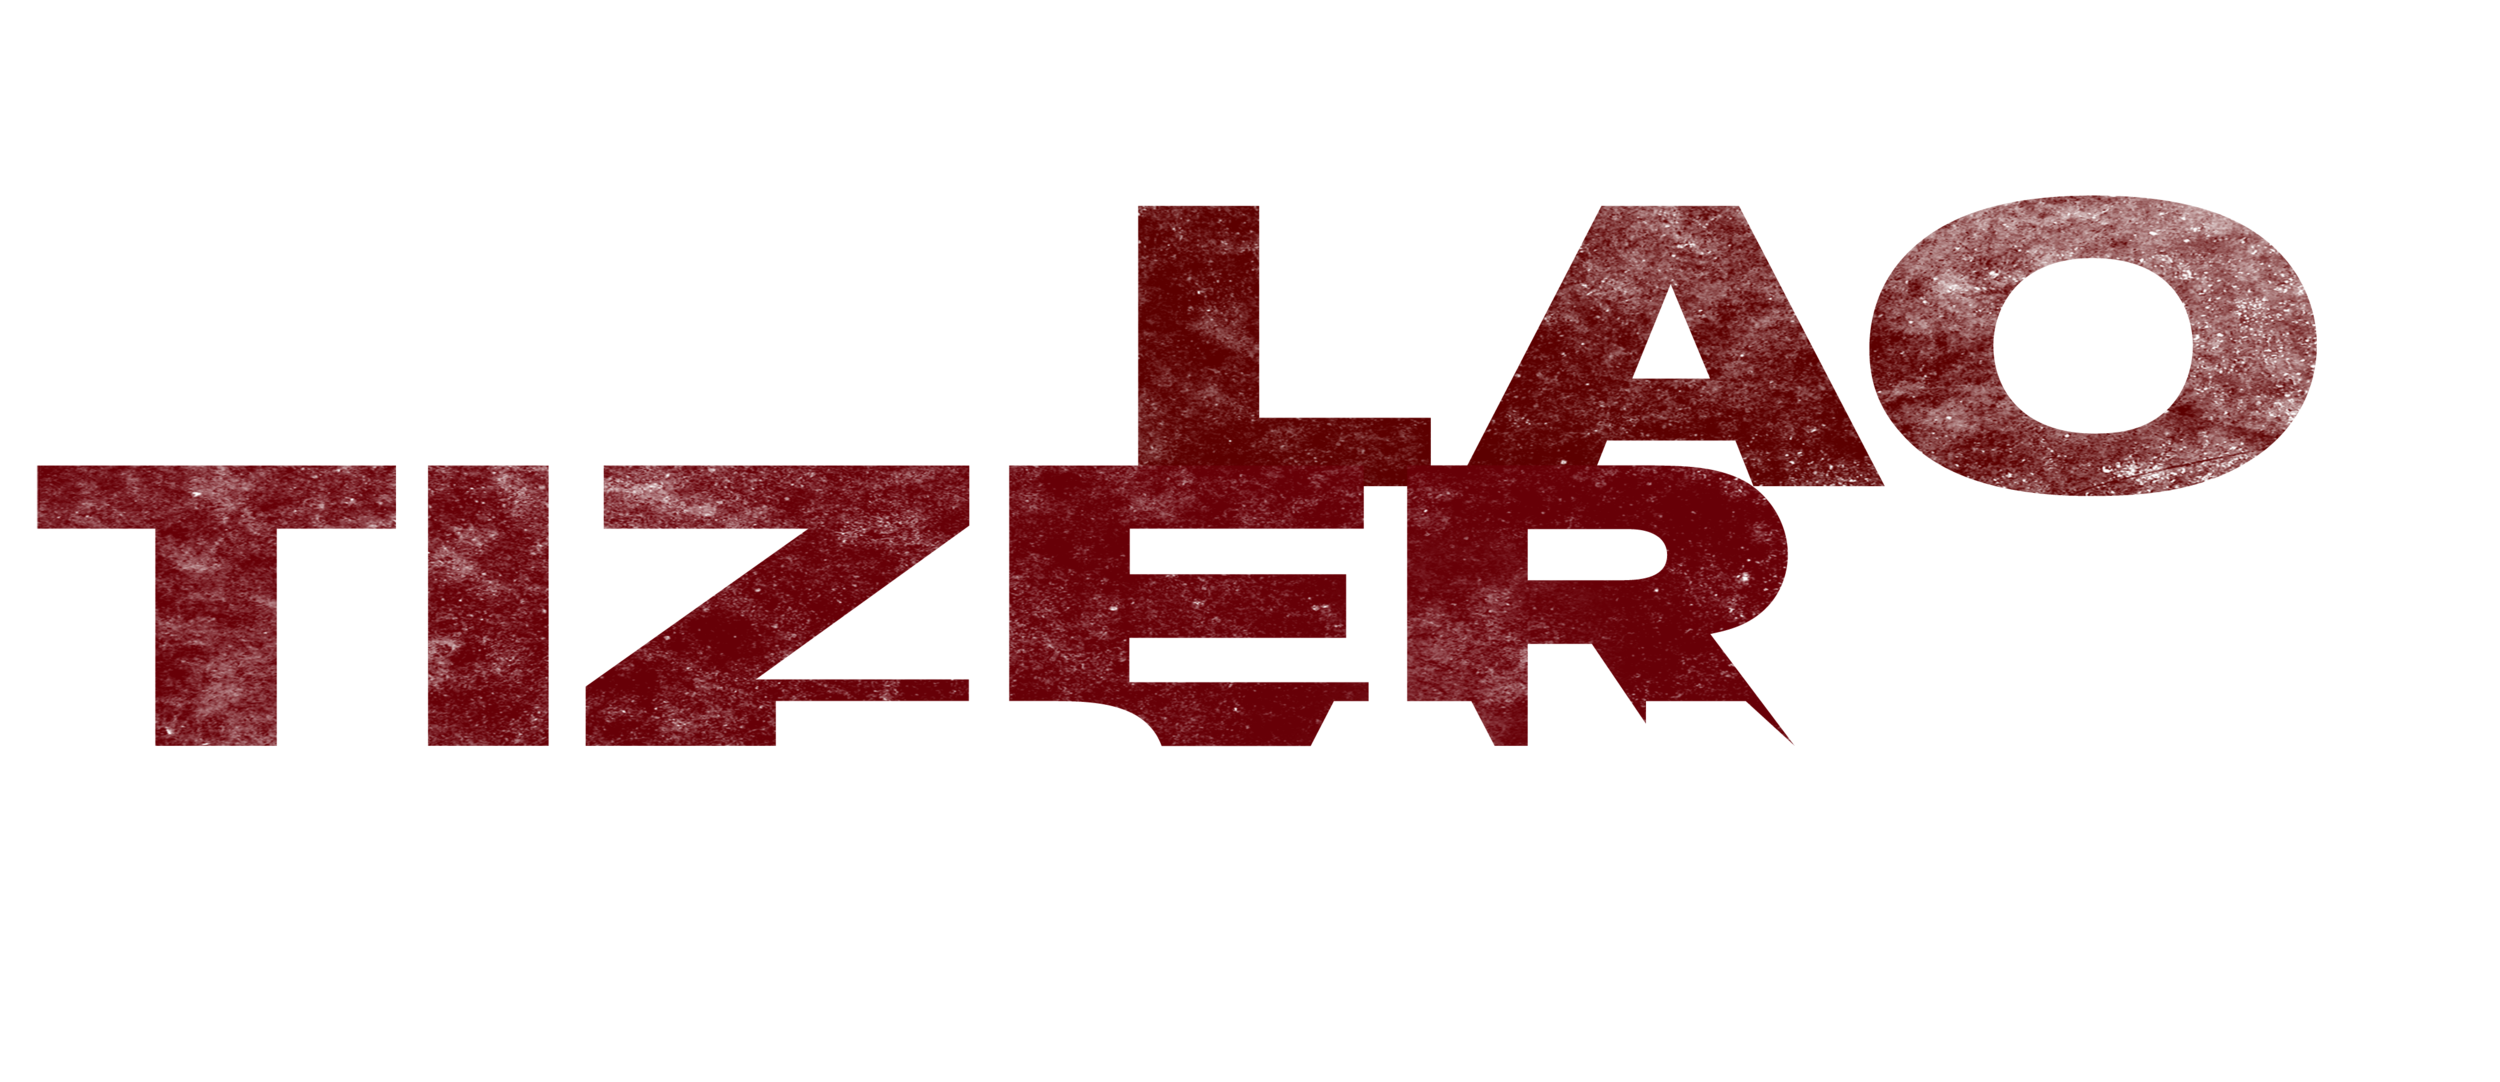 LTB_TItle.png